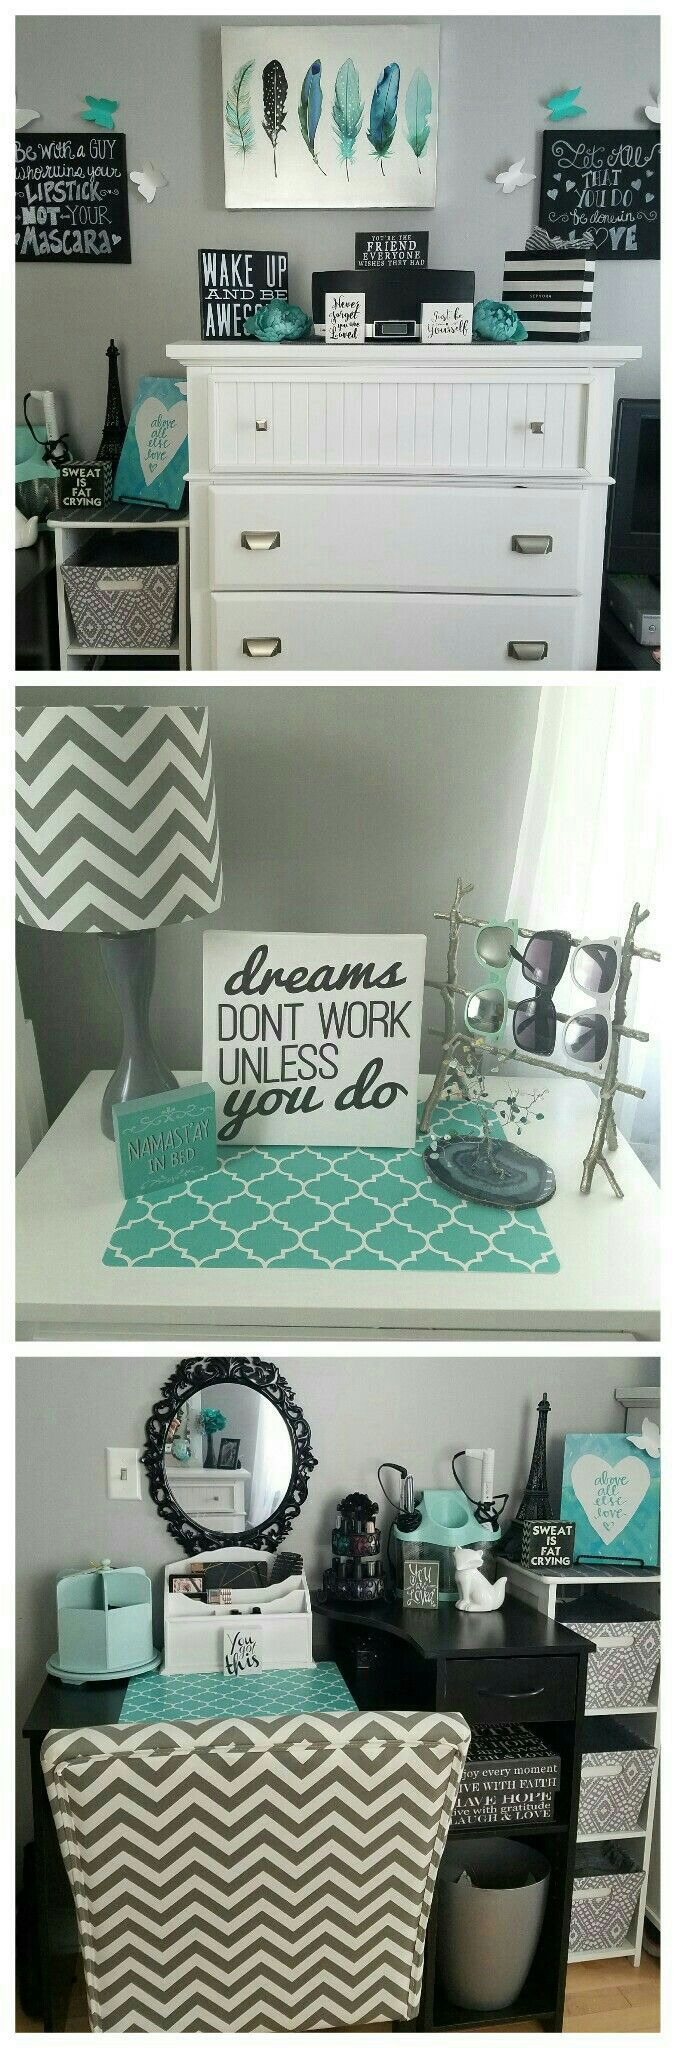 Check My Other Home Decor Ideas Videos Teal Bedroomsteen